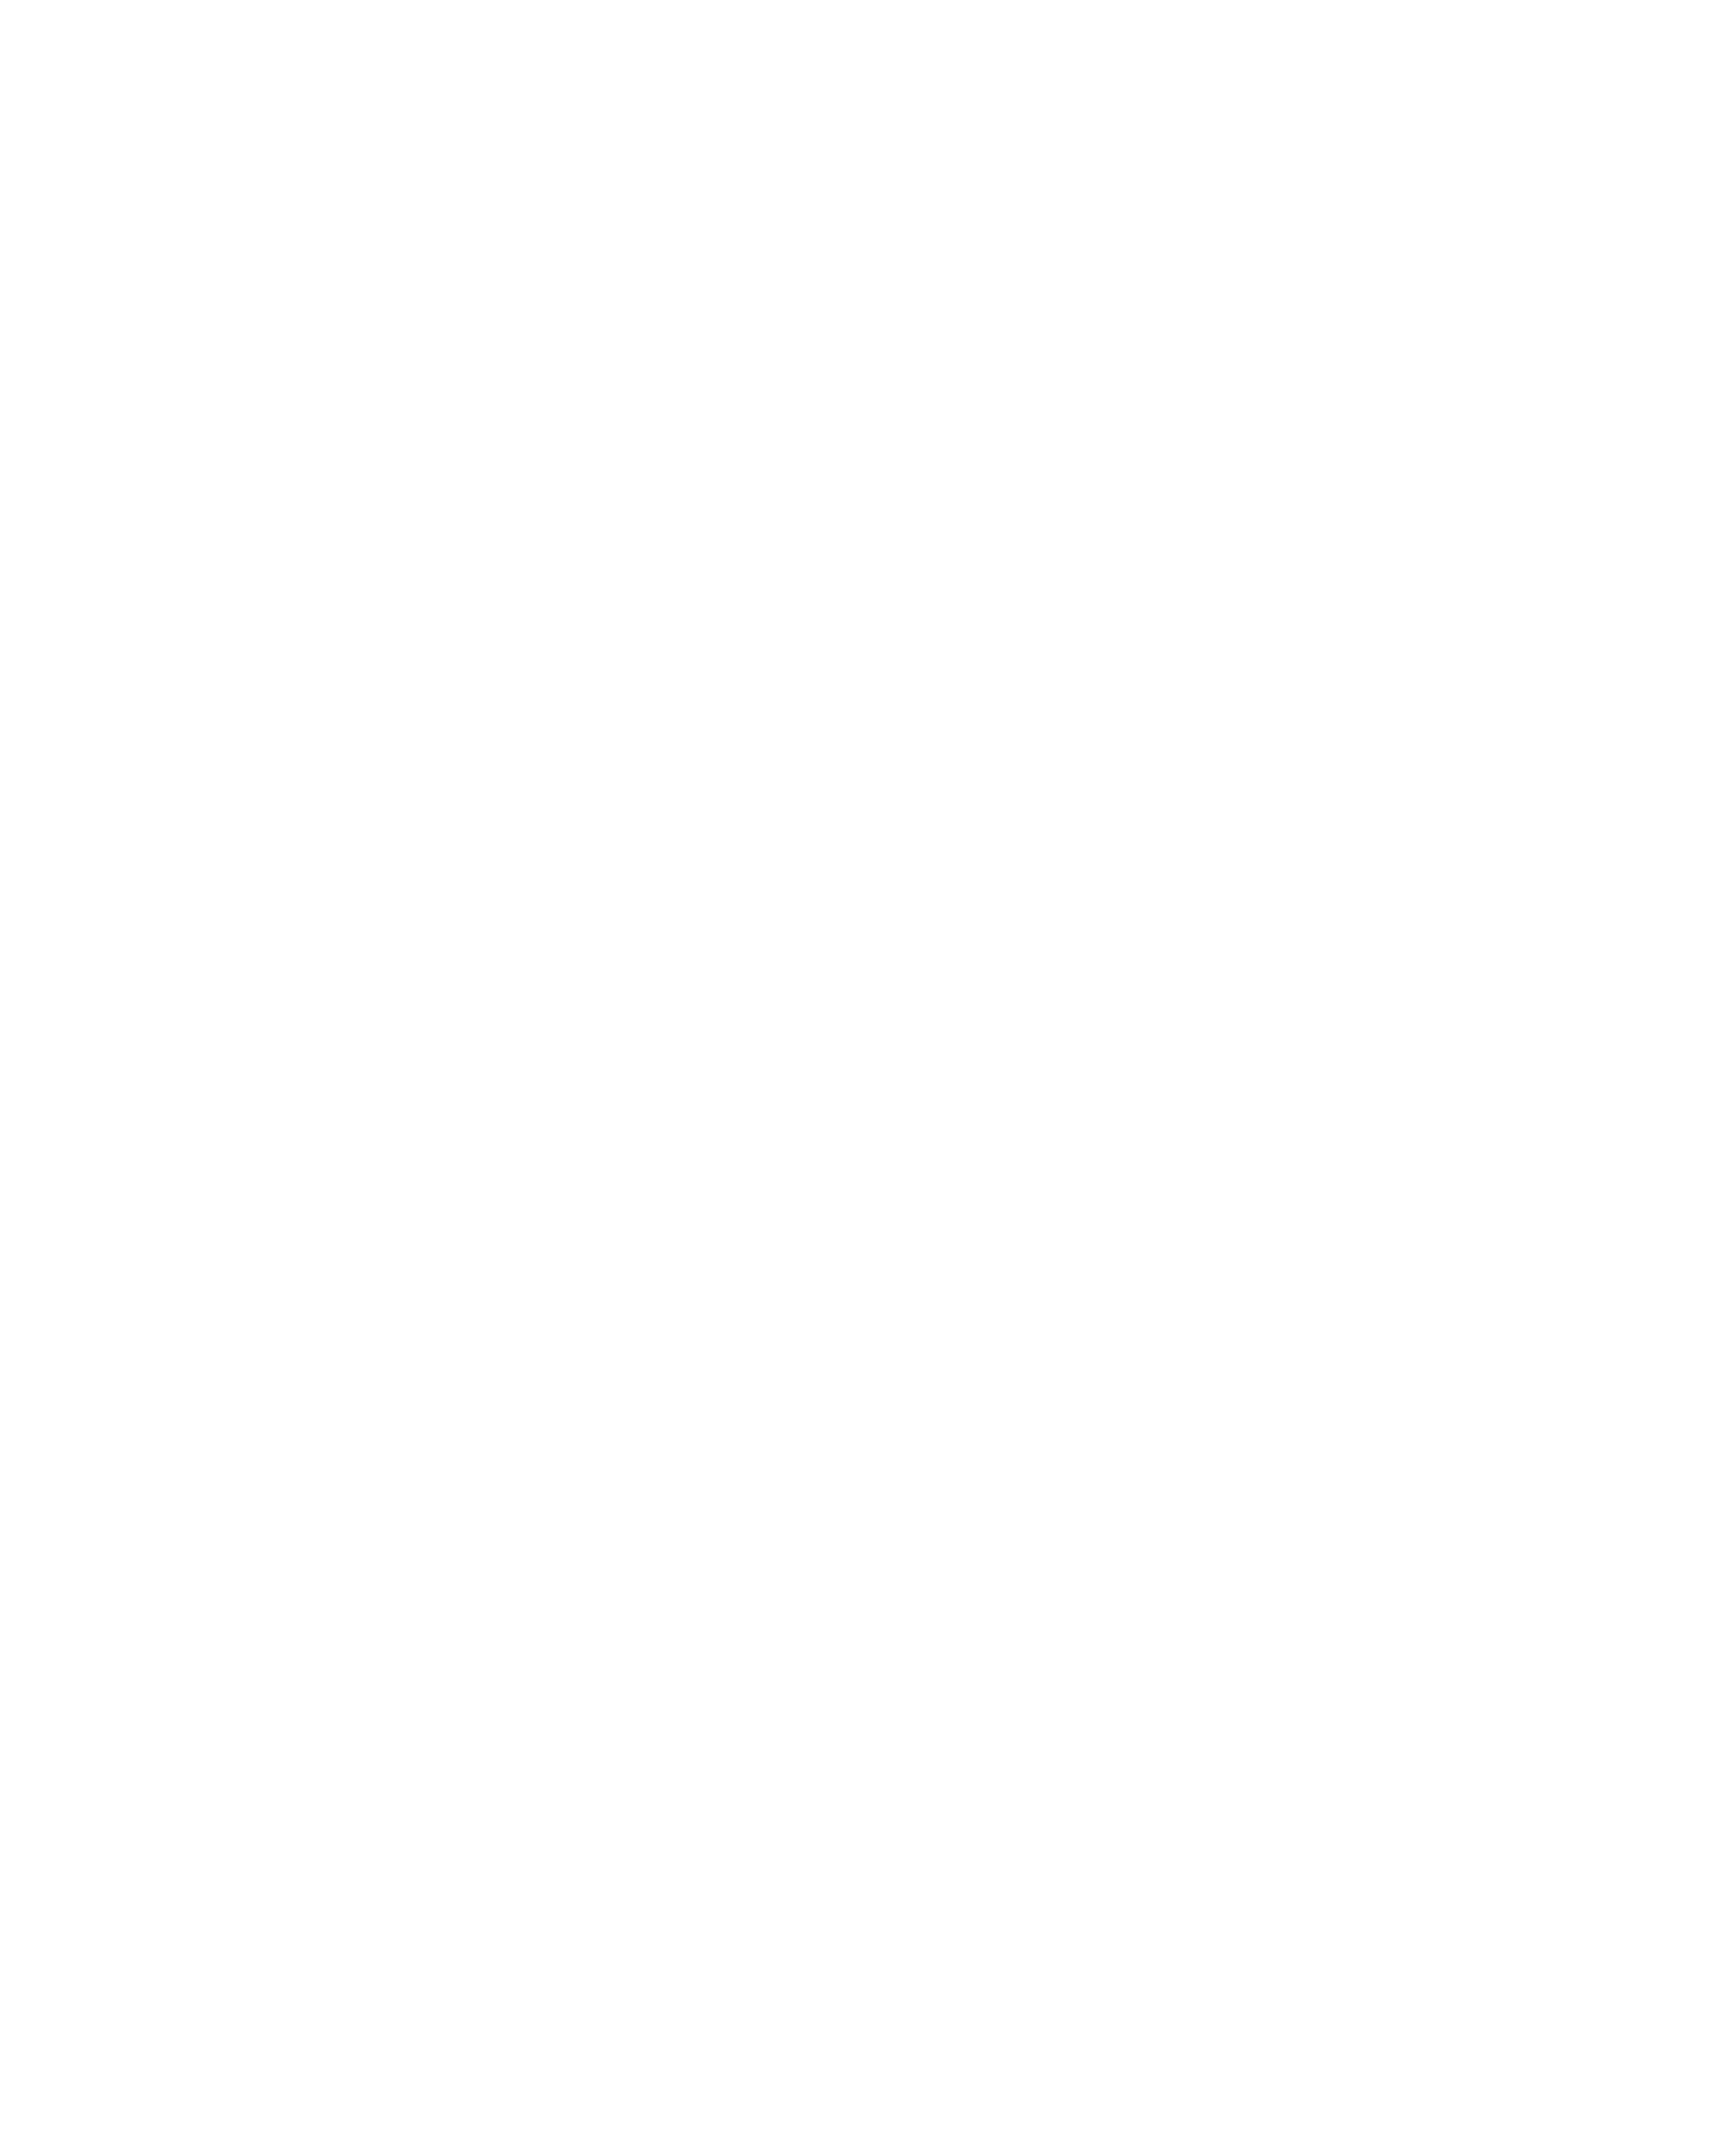 Be Bold for the Right to Life Fox Enterprises Limited